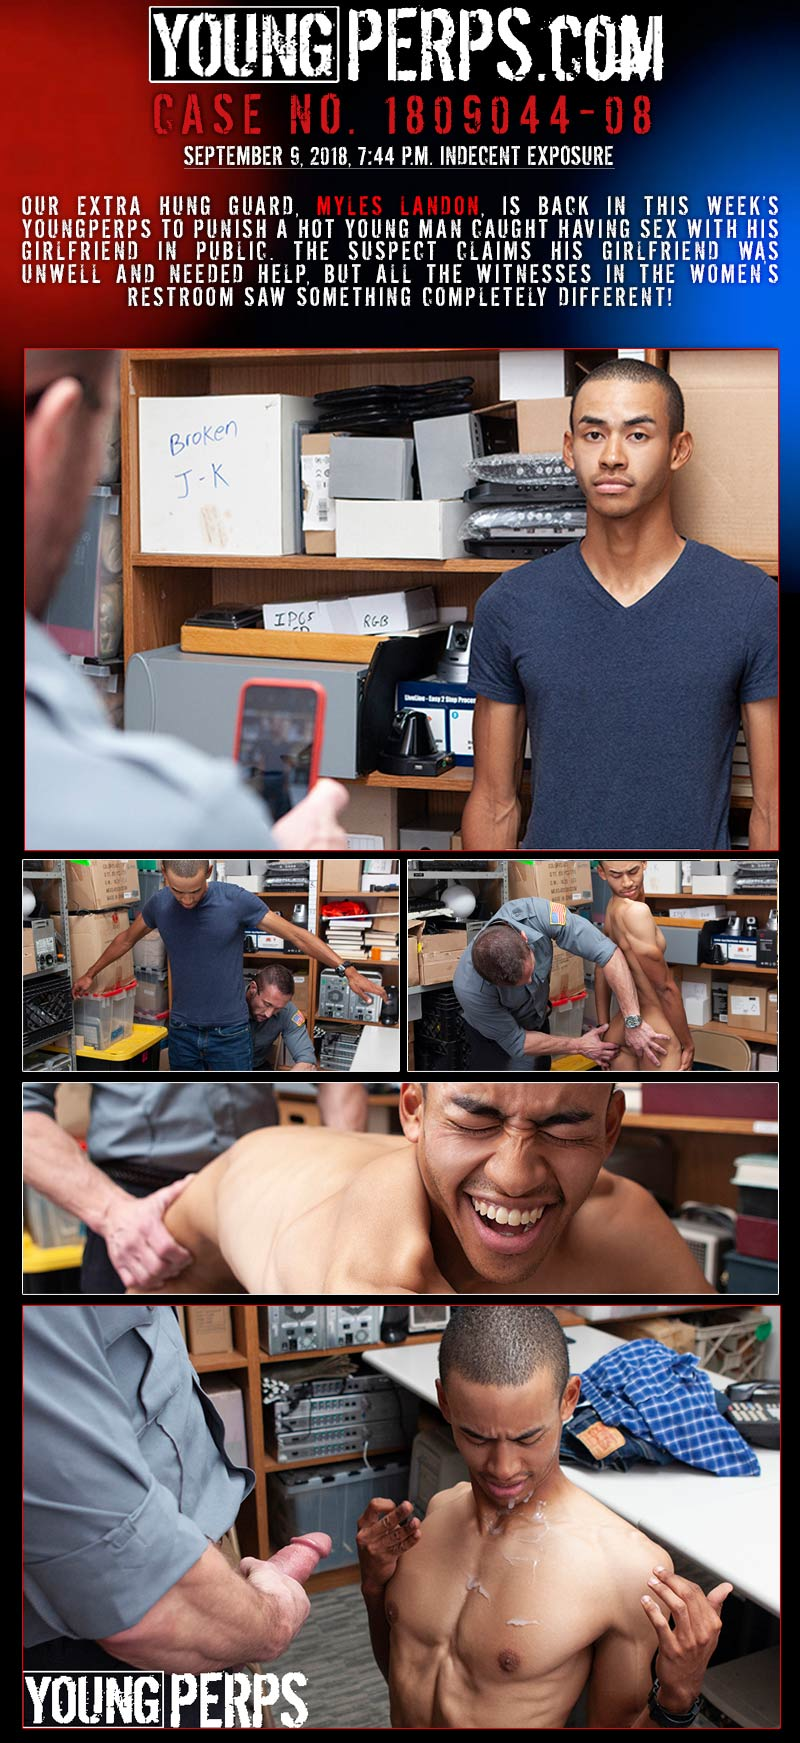 Indecent Exposure (Case # 1809044-08) at YoungPerps